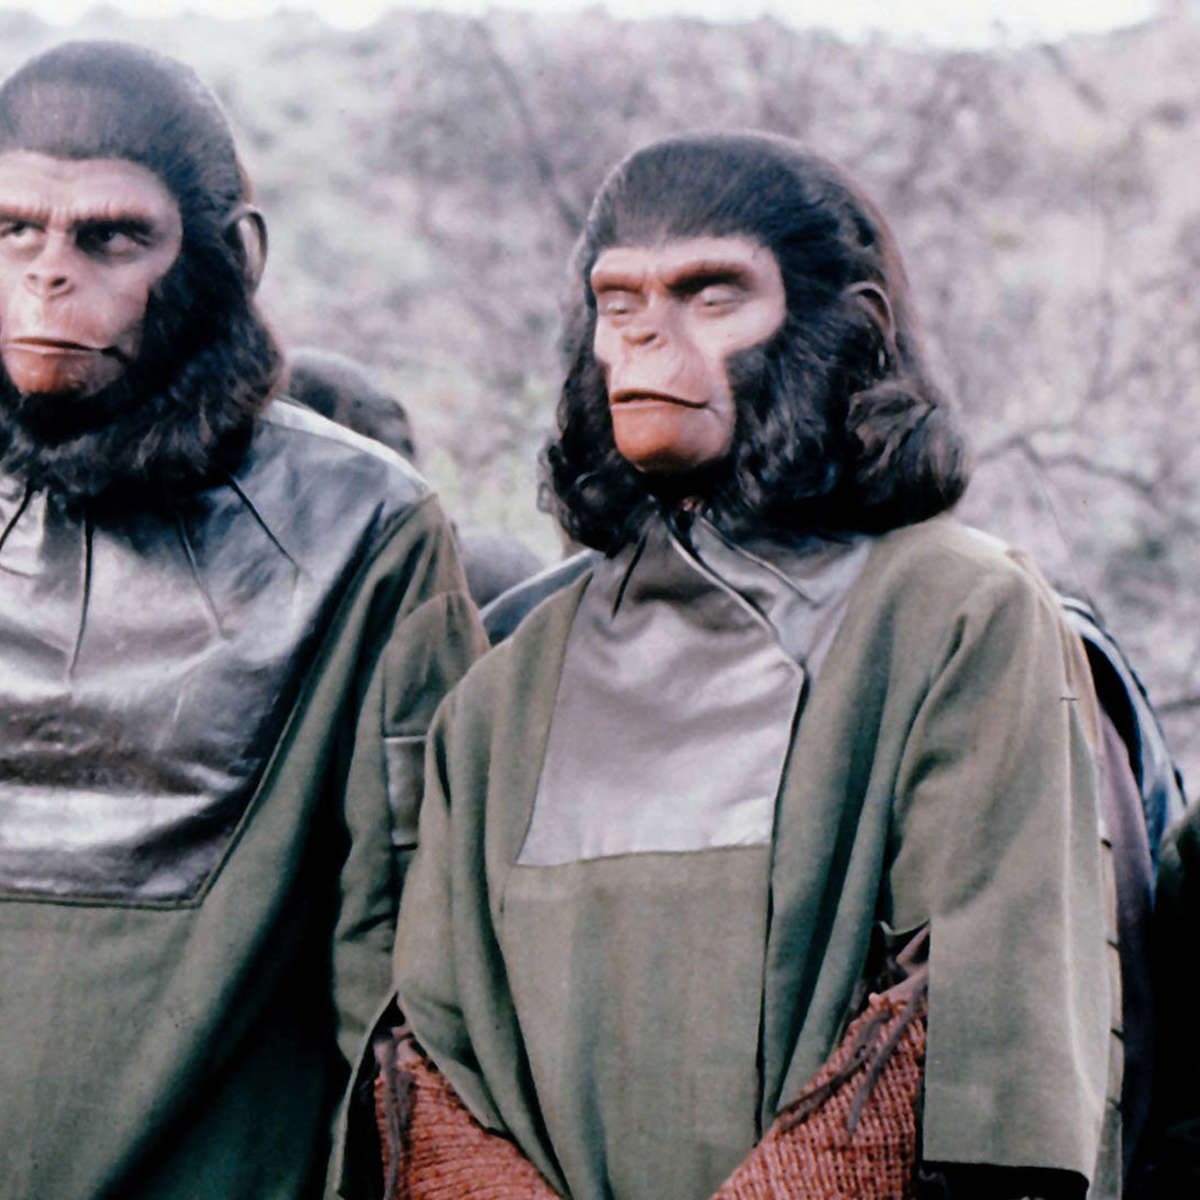 battle-for-the-planet-of-the-apes-caesar2.jpg